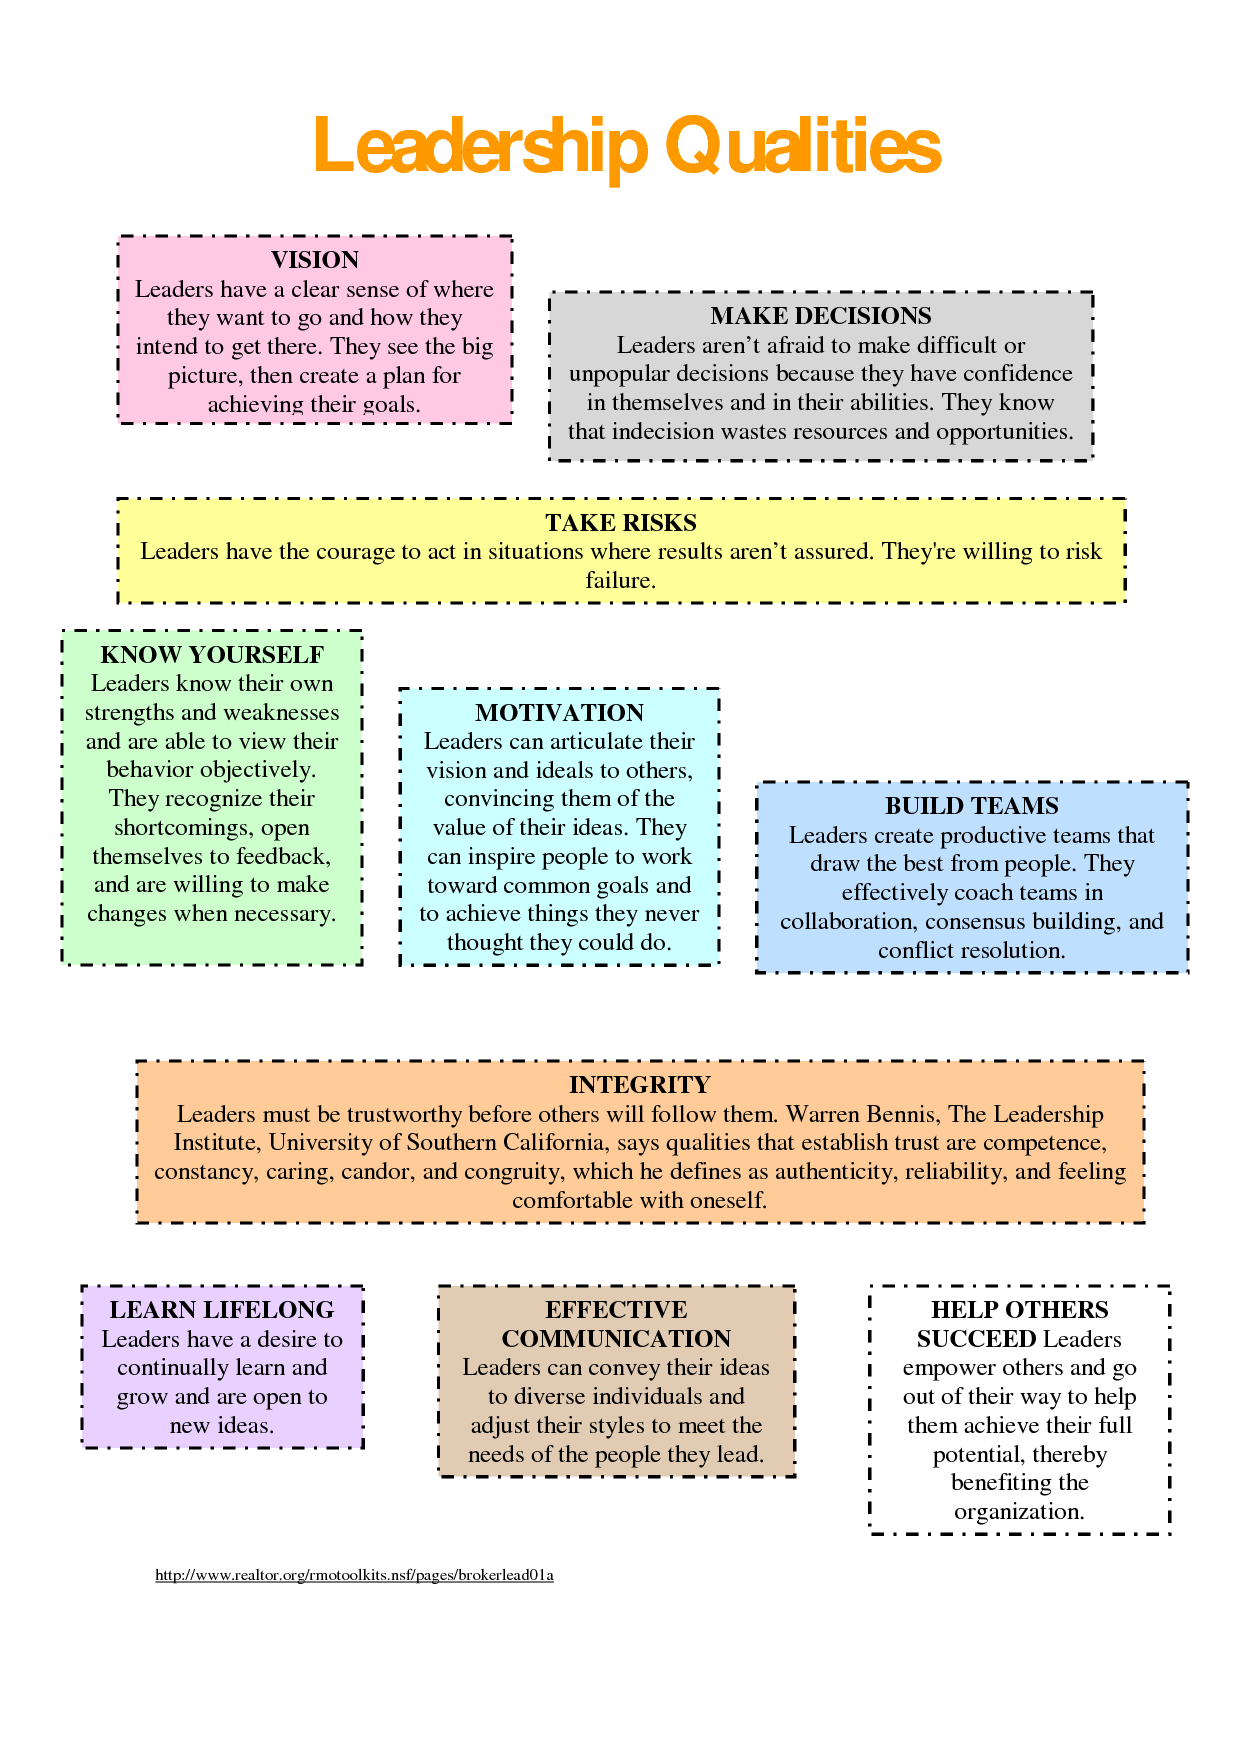 effective leadership qualities essay The top 10 leadership qualities updated: september 26, 2015 introduction to spread the fame and take the blame is a hallmark of effective leadership.